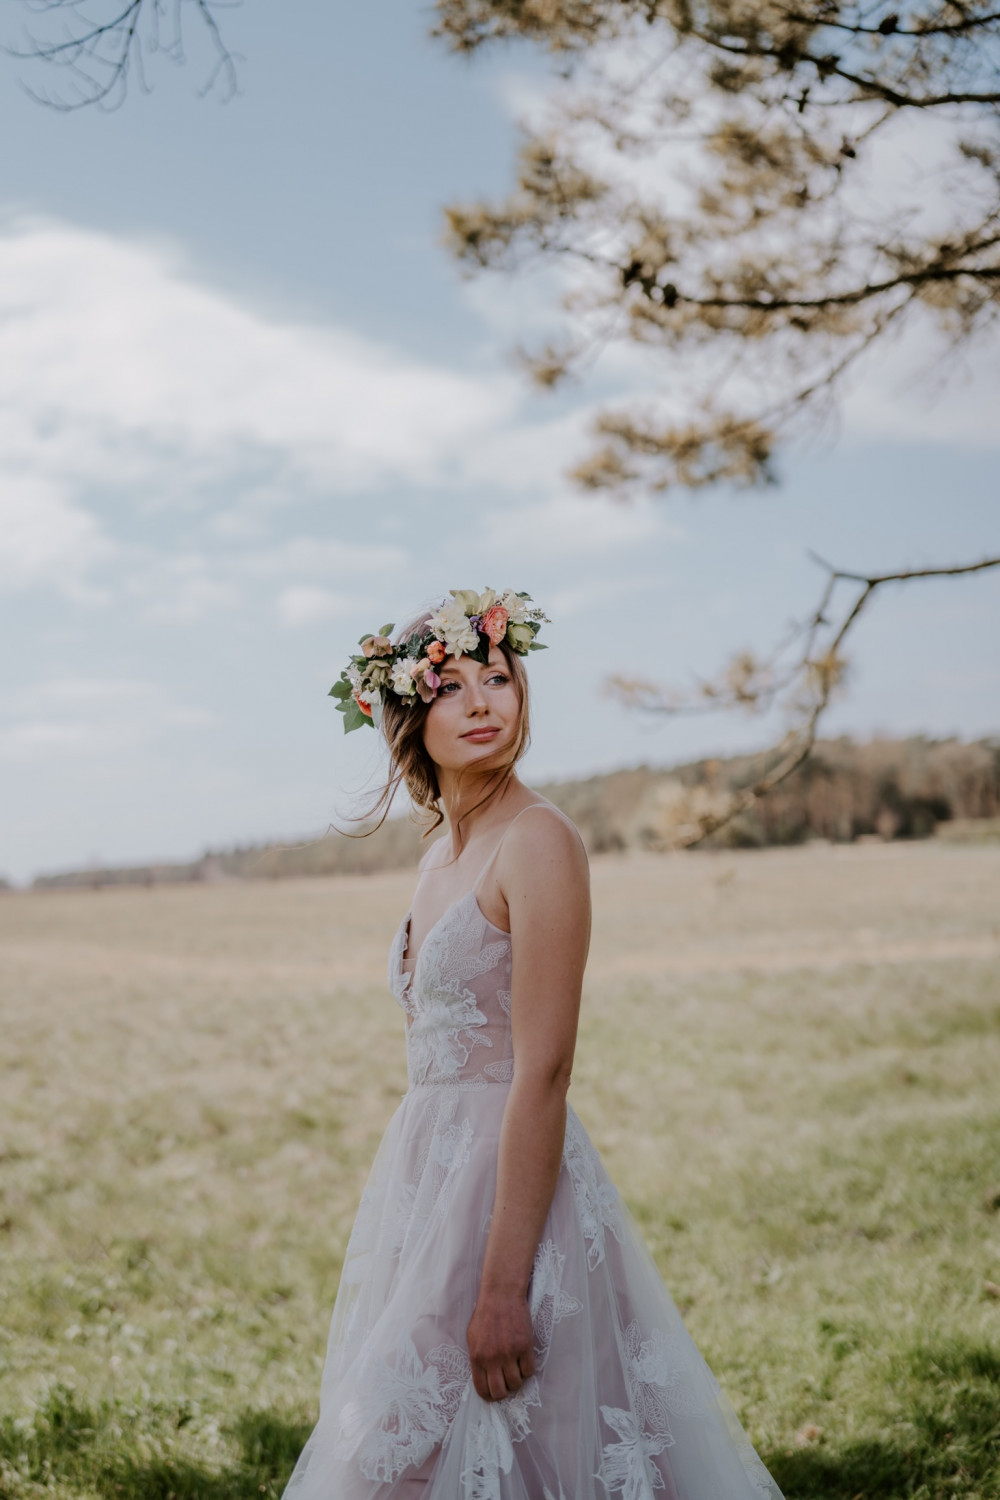 Rosy and her gorgeous glowing skin compliments her elegance - Make Me Bridal Artist: Hayley Clarke Makeup Artist. Photography by: Emma Shaw Photography. #flowercrown #bridalmakeup #bride #definedmakeup #glowingskin #makeupartistnorfolk